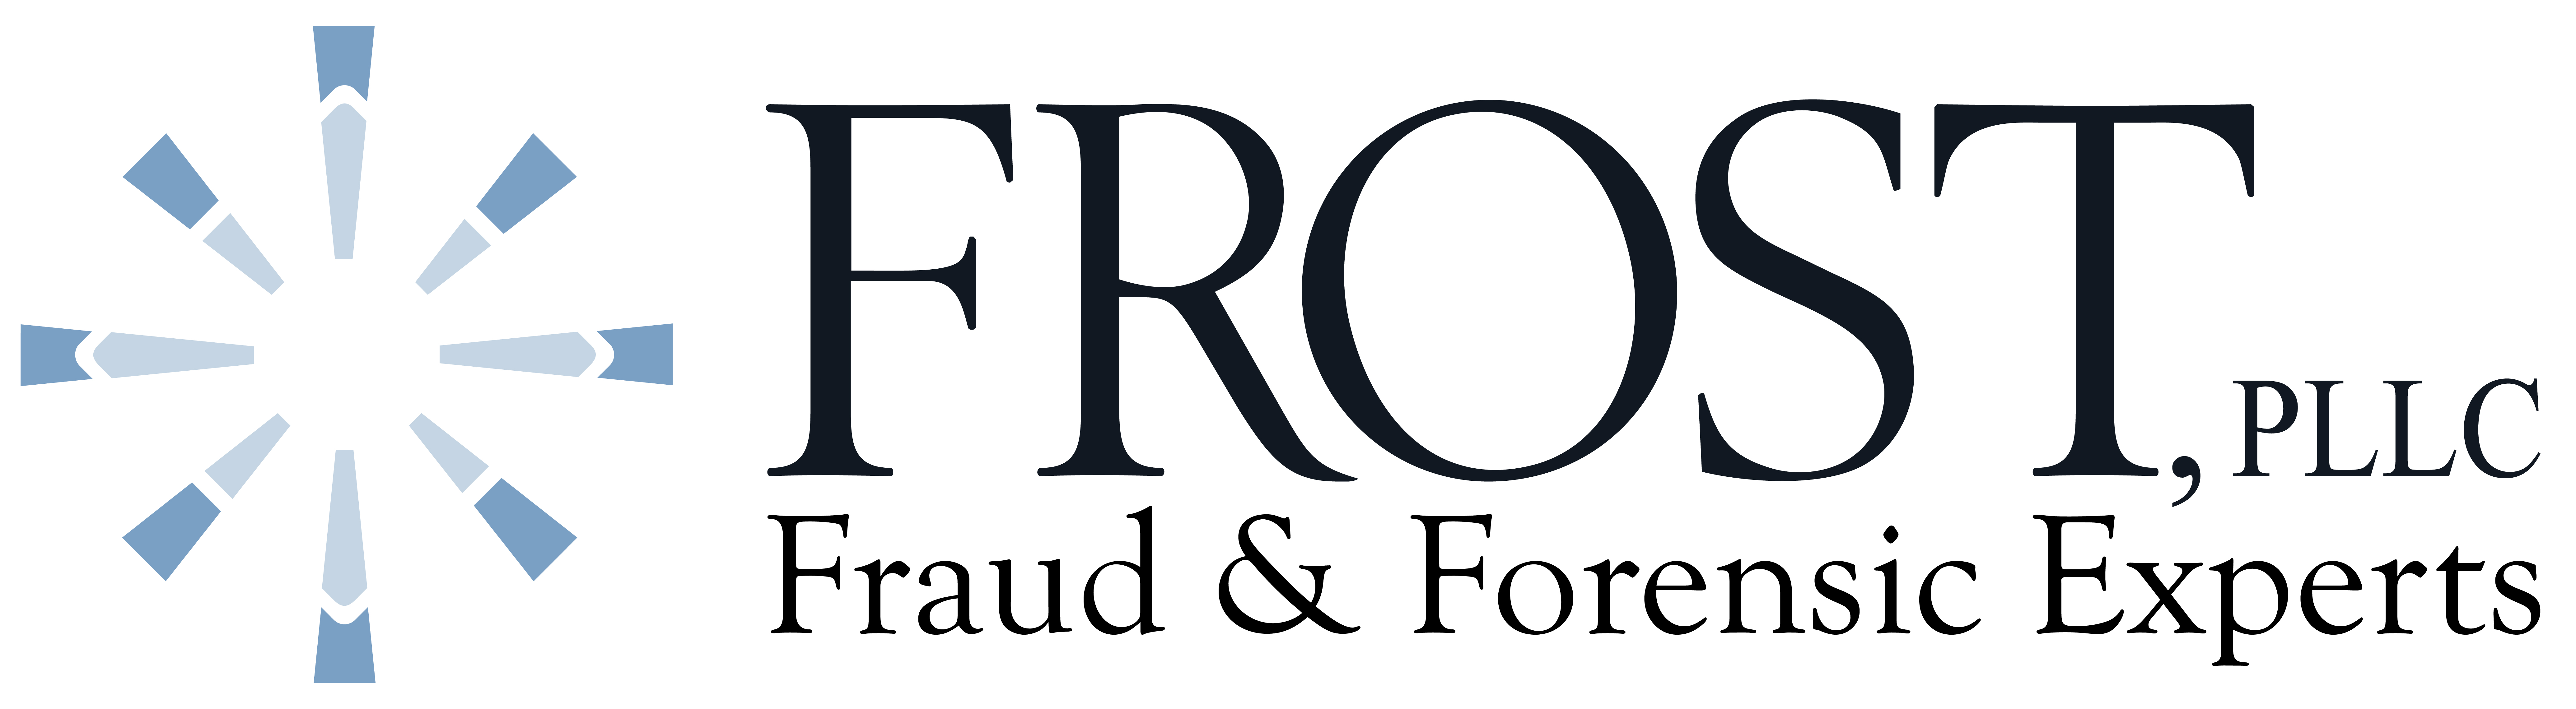 Frost Pllc Fraud Forensic Experts